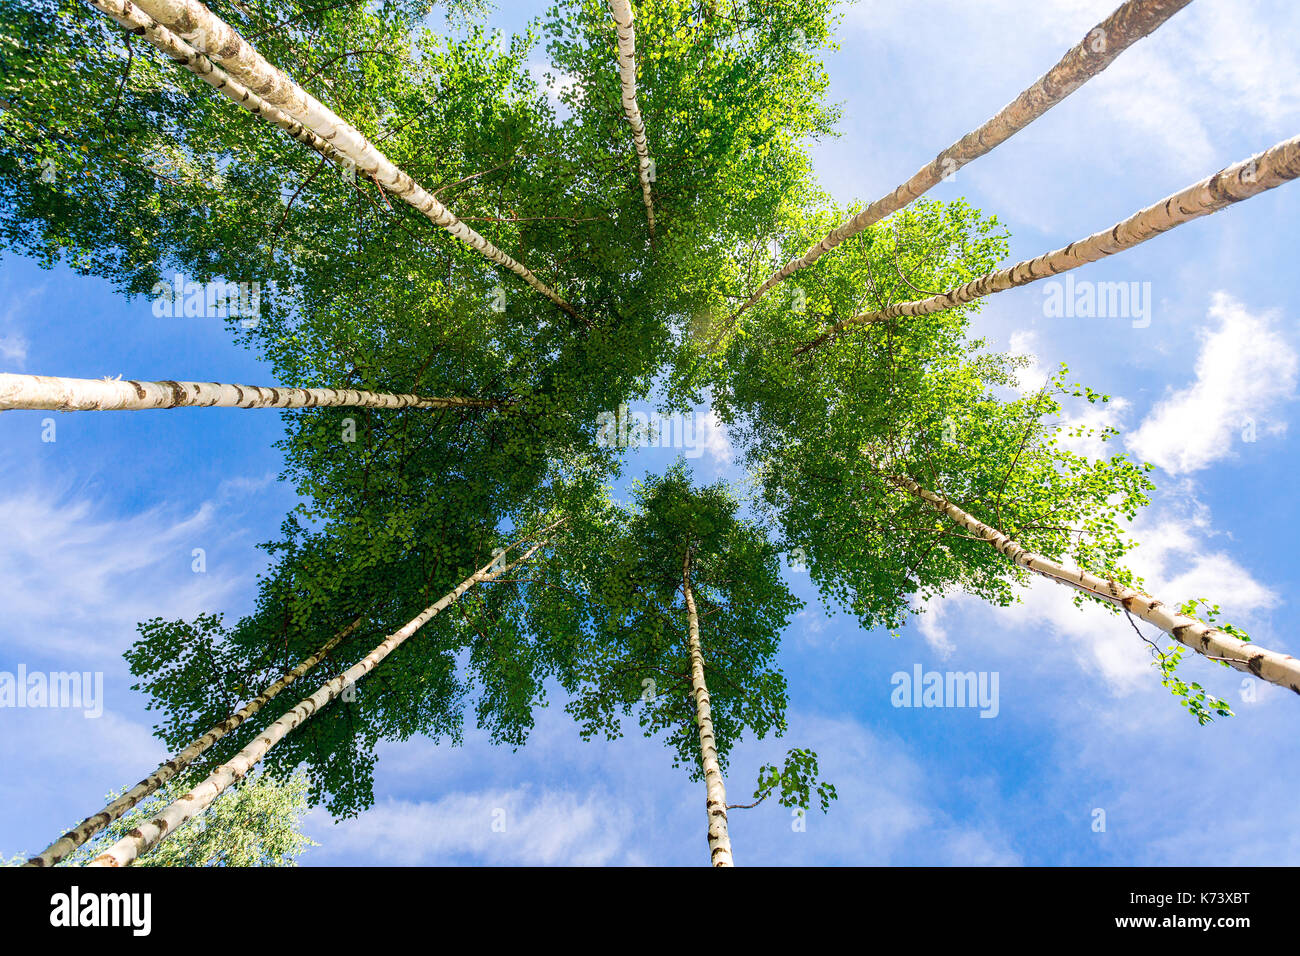 Crowns of tall birch trees above his head in the forest against a blue sky. Wild nature of the forests. Deciduous - Stock Image